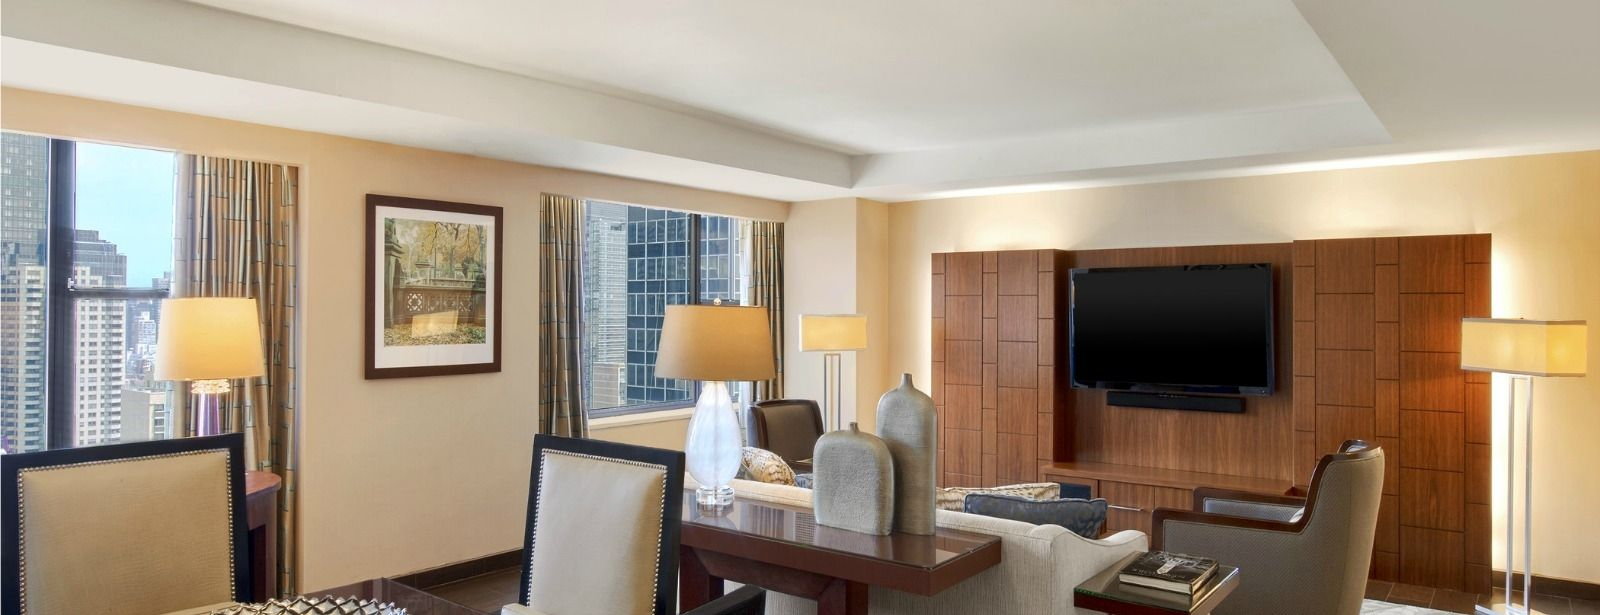 Midtown Manhattan Accommodations - Presidential Suite